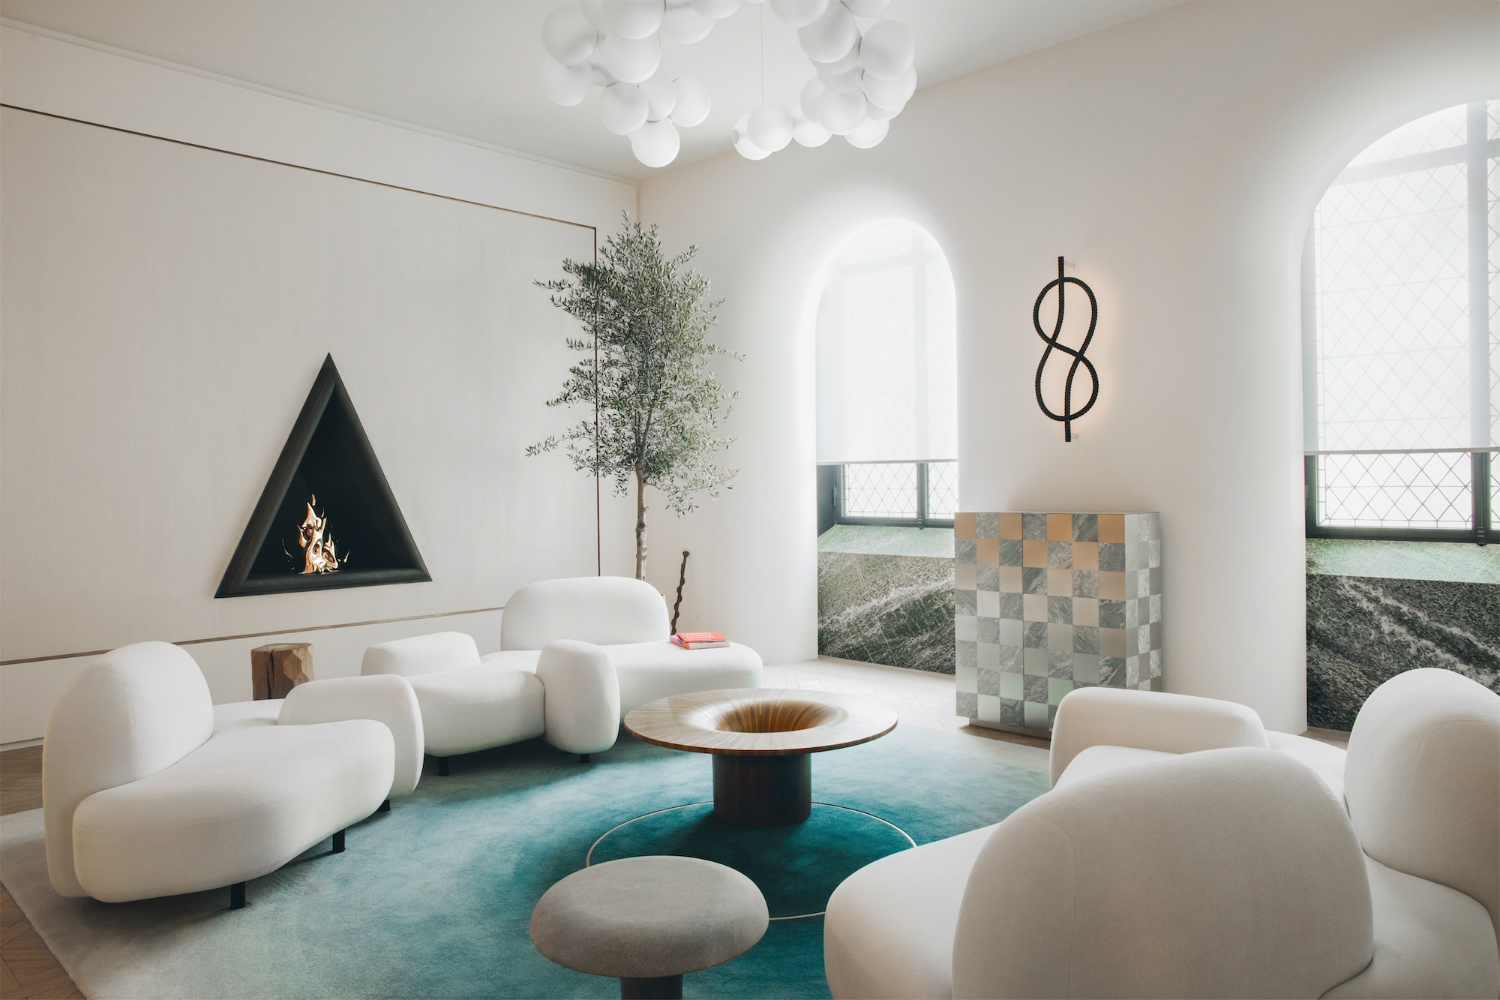 Maison et Objet 2020: Top Interiors by French Interior Designers